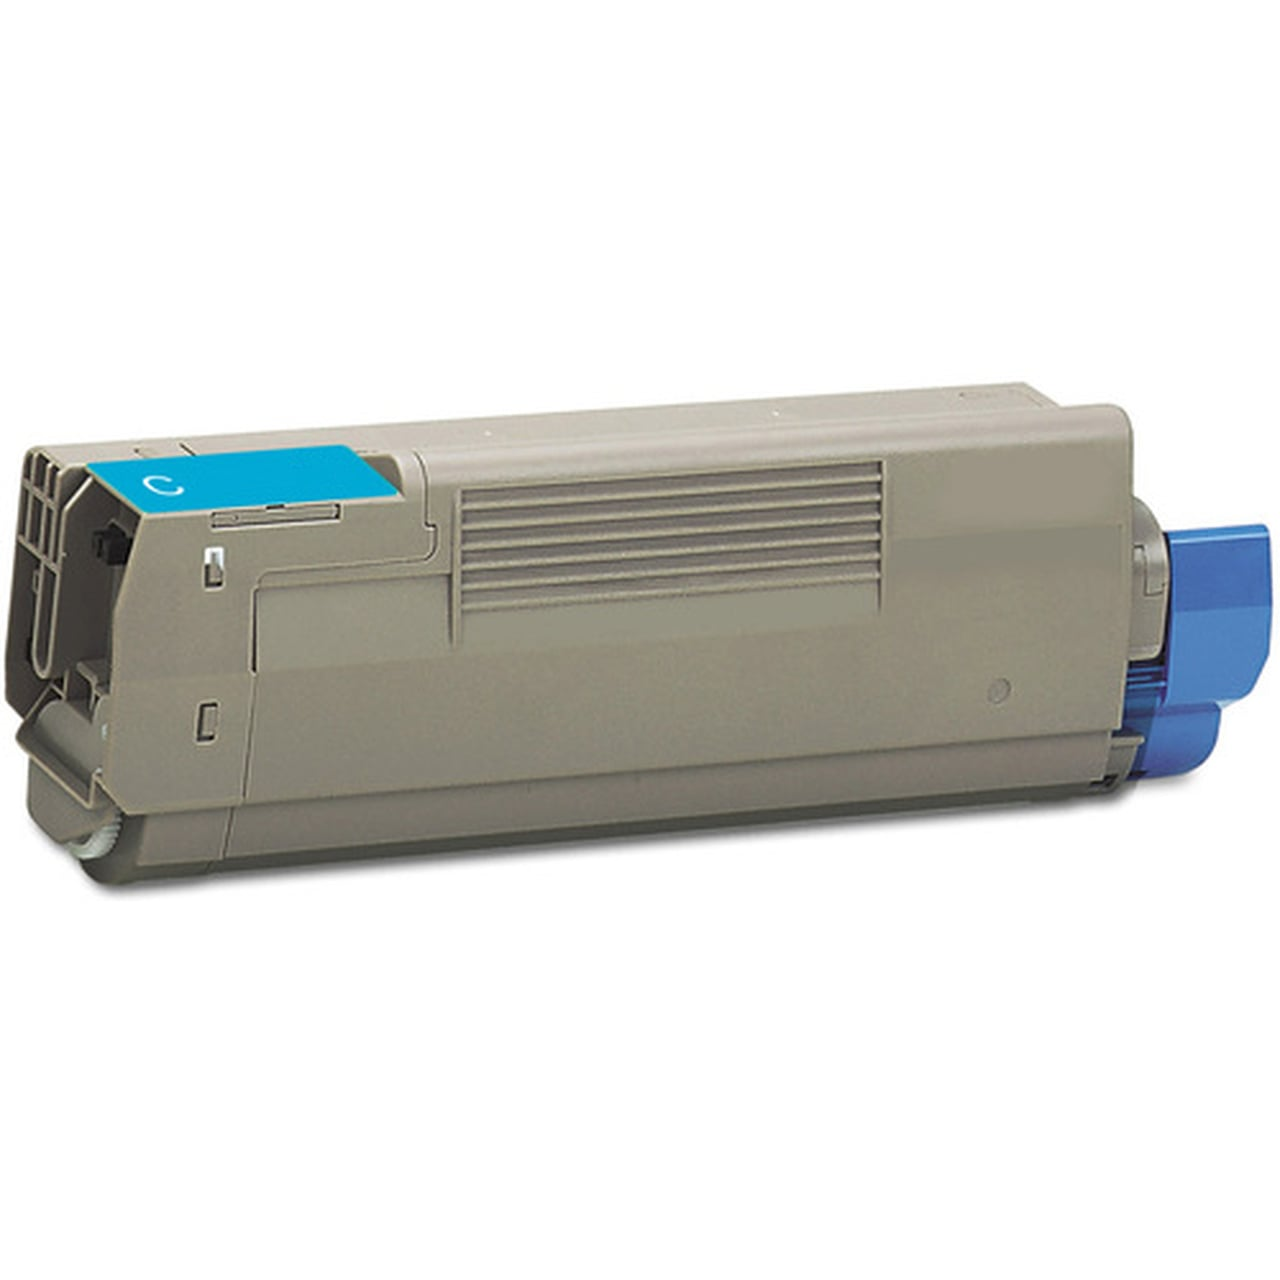 44318603 Toner Cartridge - Okidata Remanufactured (Cyan)